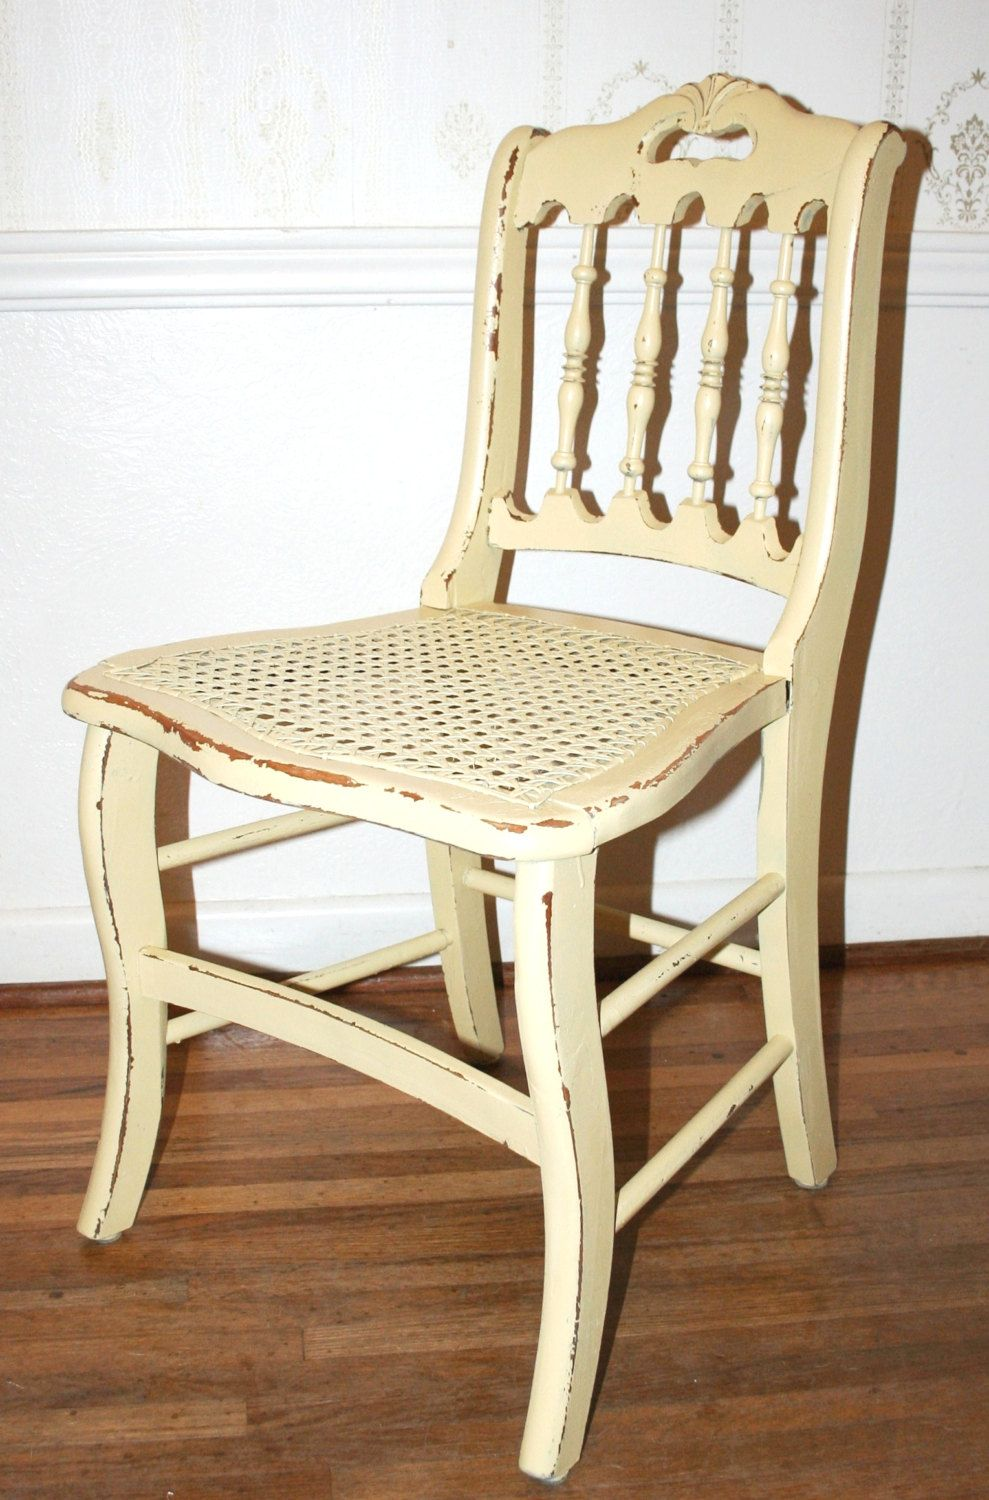 Antique Hand Painted Distressed Shabby Chic Cottage Chic Hand Carved Wood Chair Cane Seat